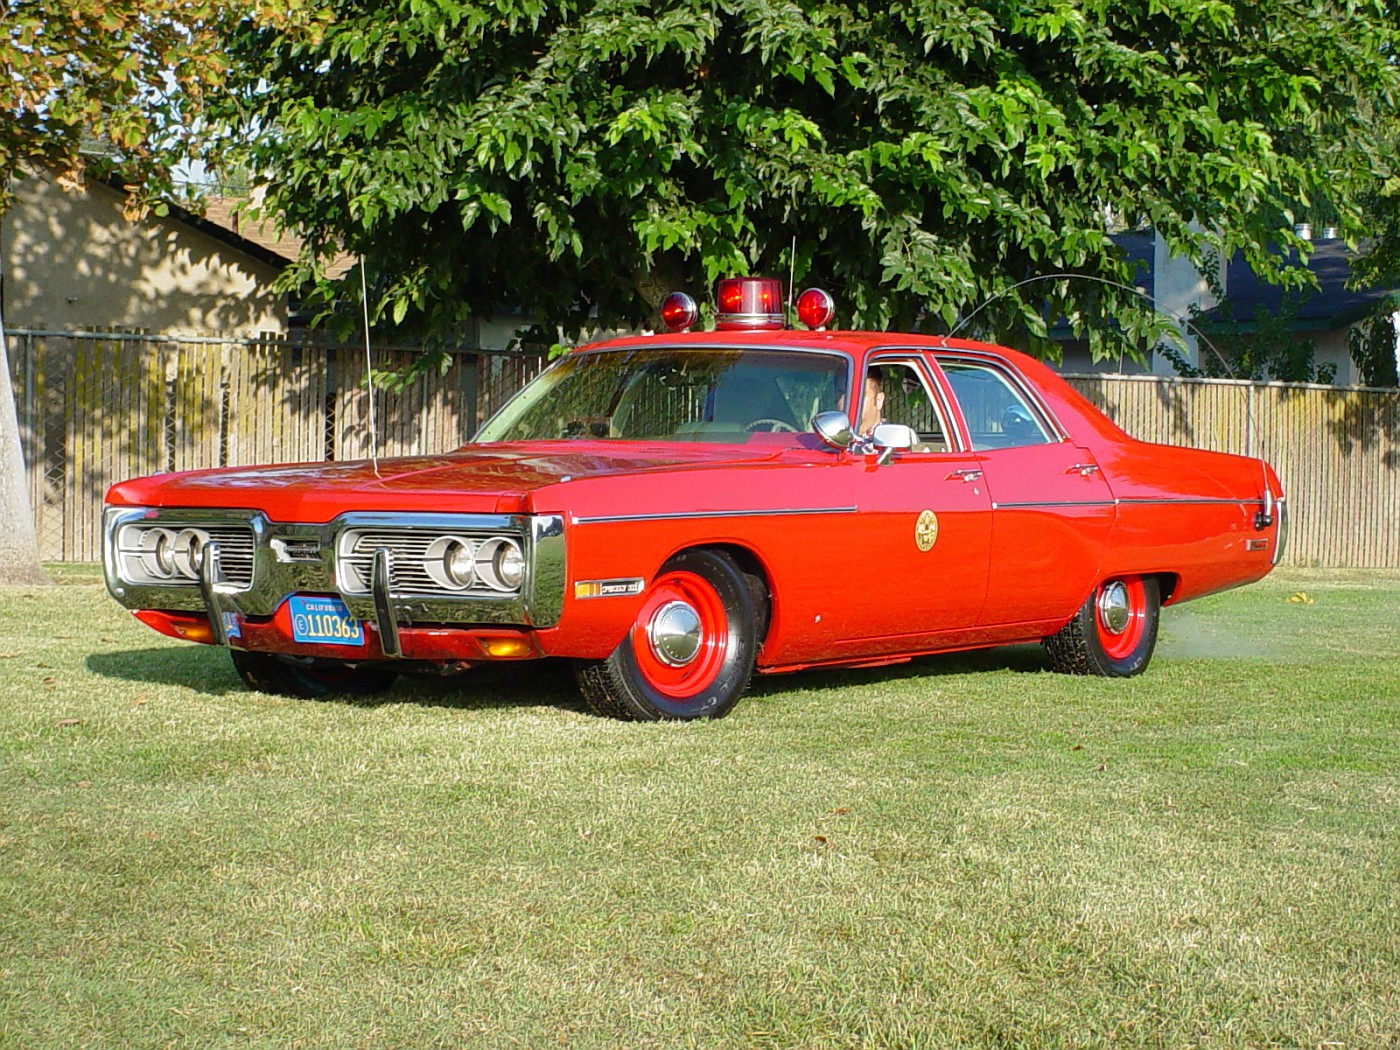 1972 Plymouth Fury